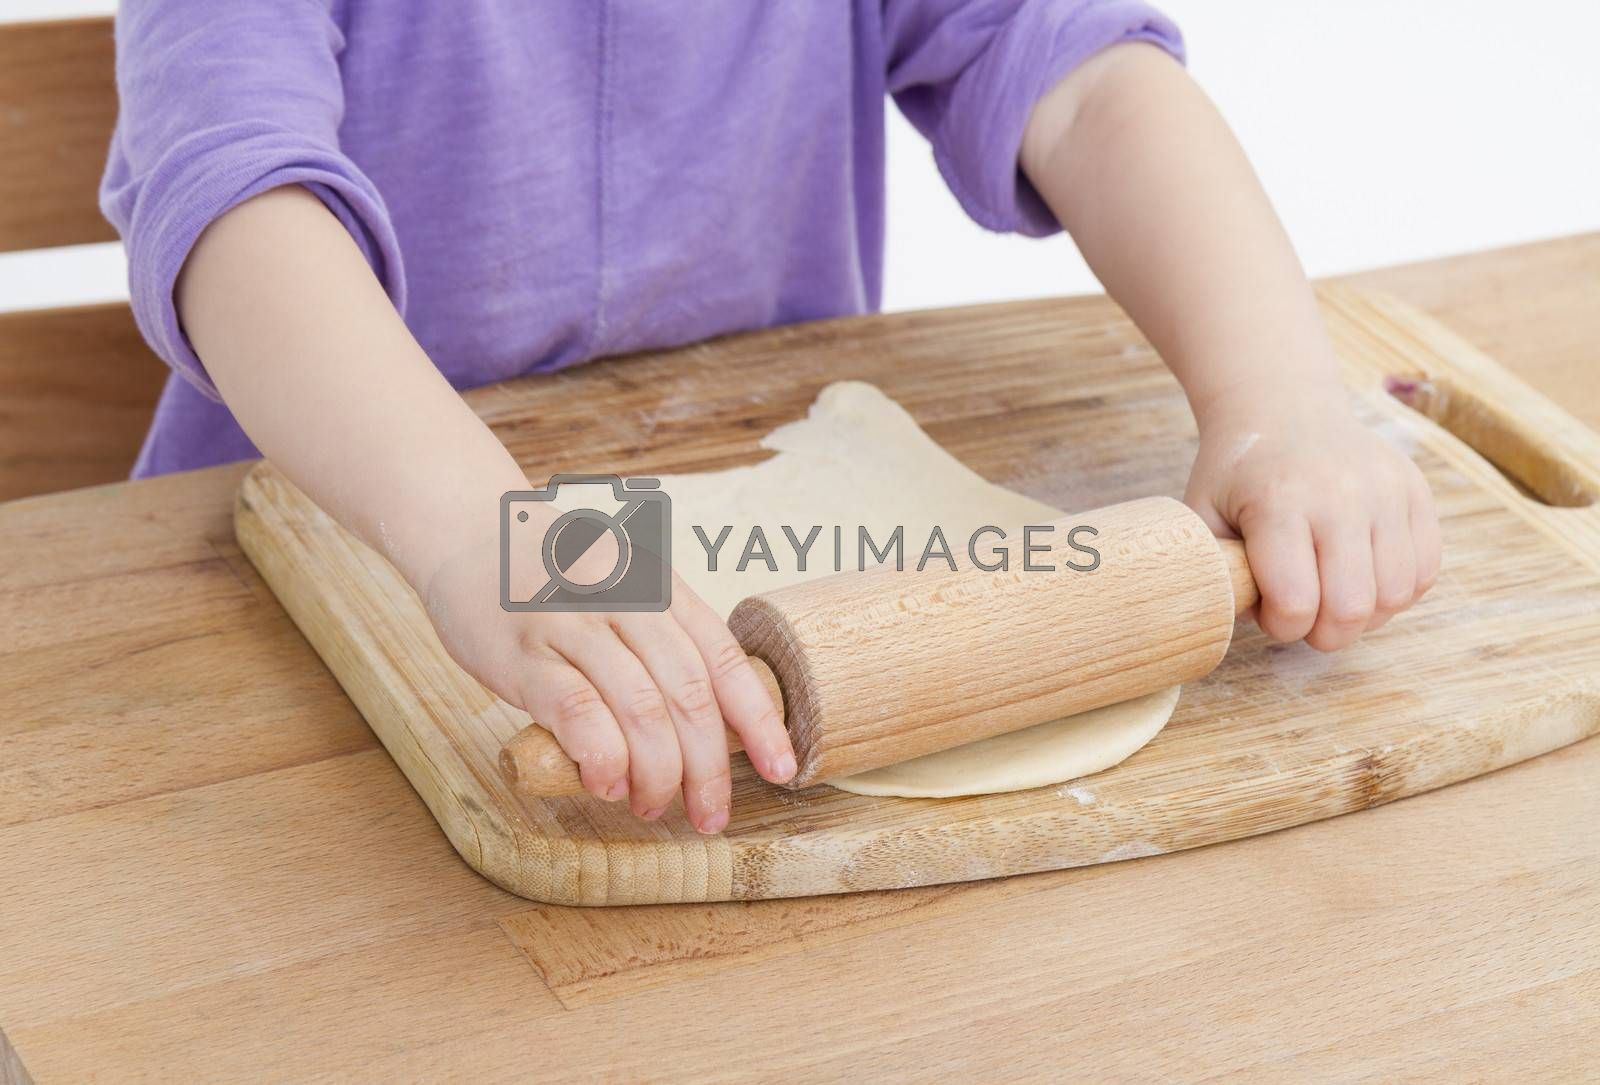 Royalty free image of rolling out dough for pizza by gewoldi